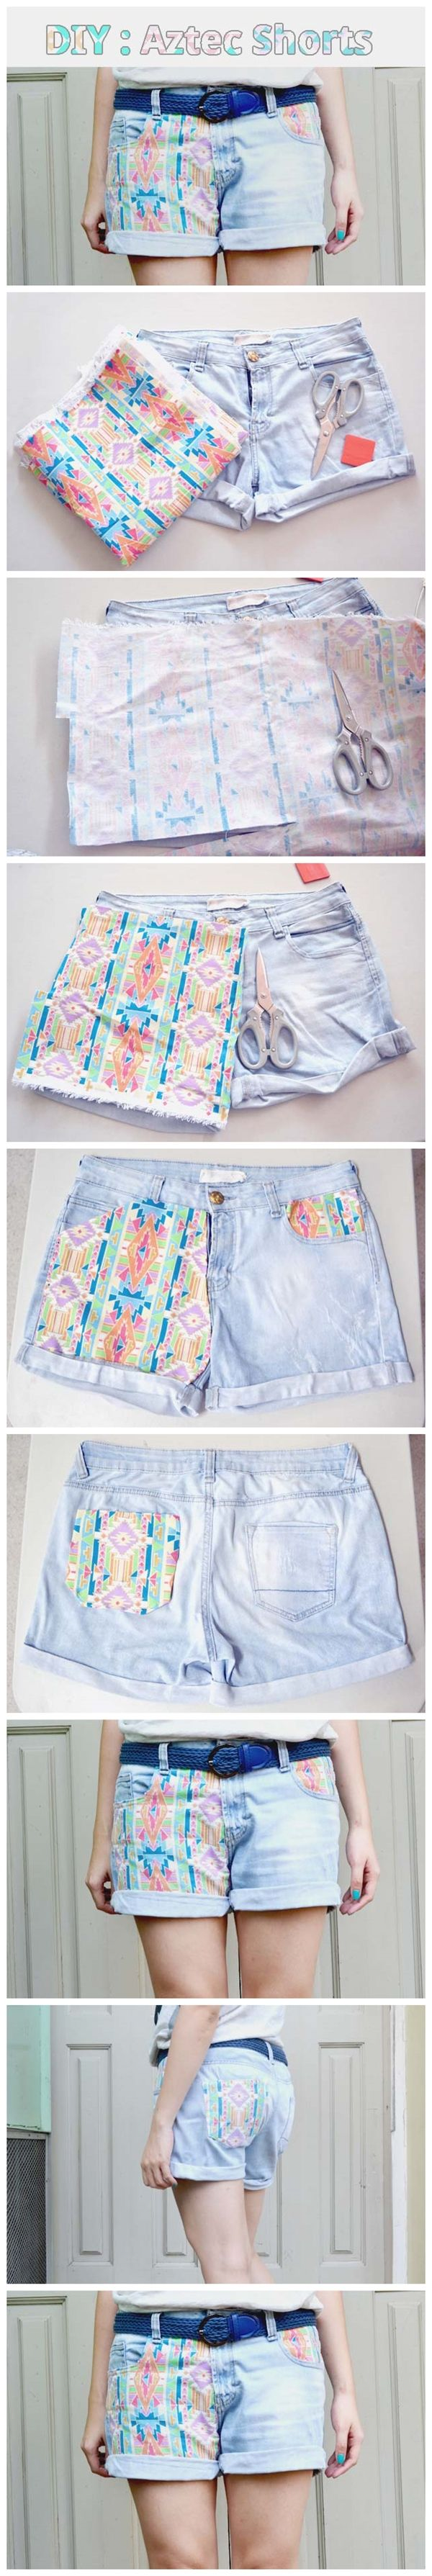 #DIY Aztec #Shorts #Tutorial ...would look awesome with flag fabric